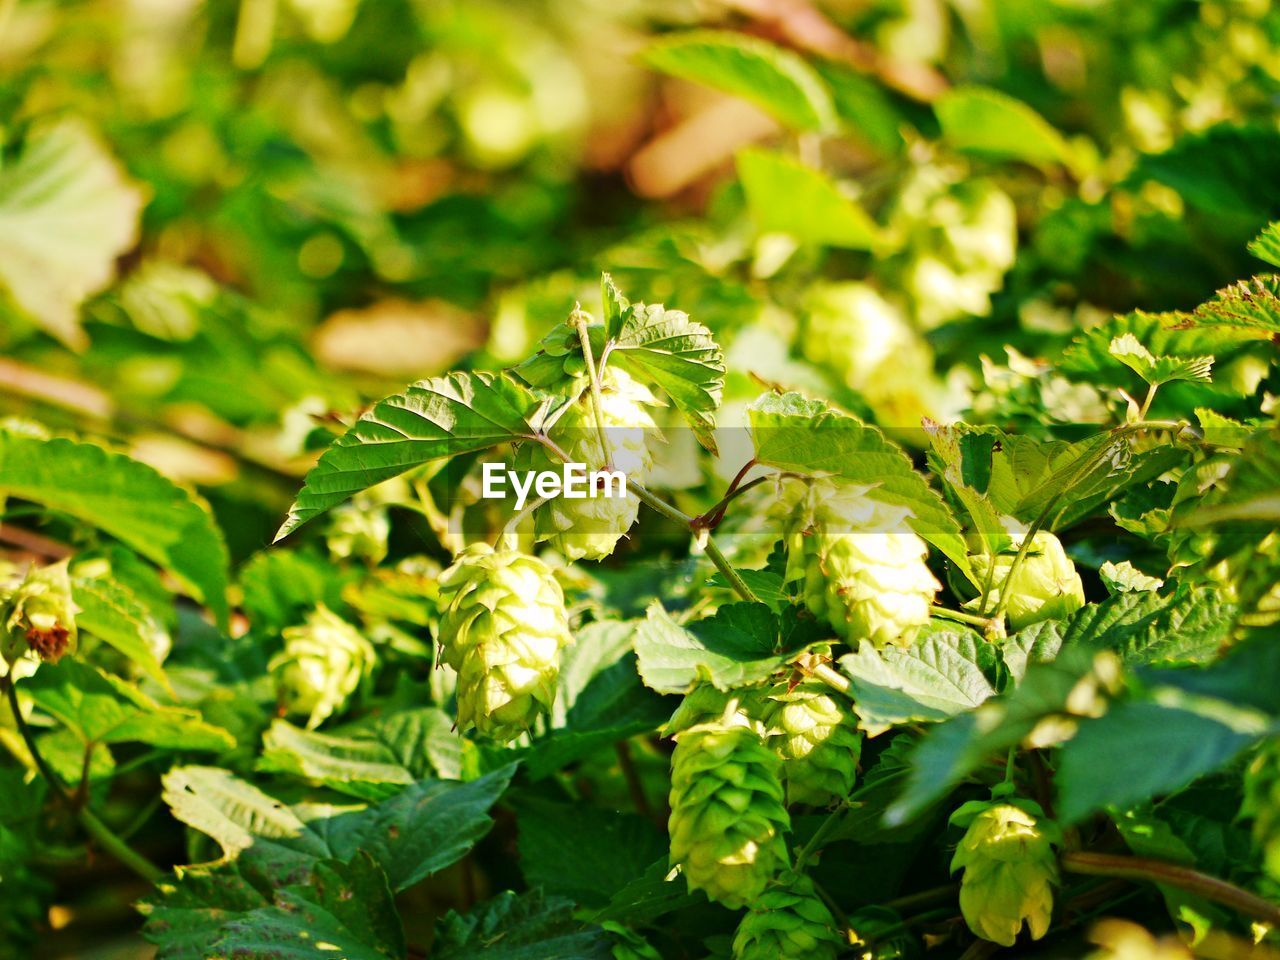 growth, leaf, green color, plant part, plant, selective focus, close-up, beauty in nature, day, nature, no people, food and drink, food, freshness, outdoors, full frame, sunlight, field, focus on foreground, land, herb